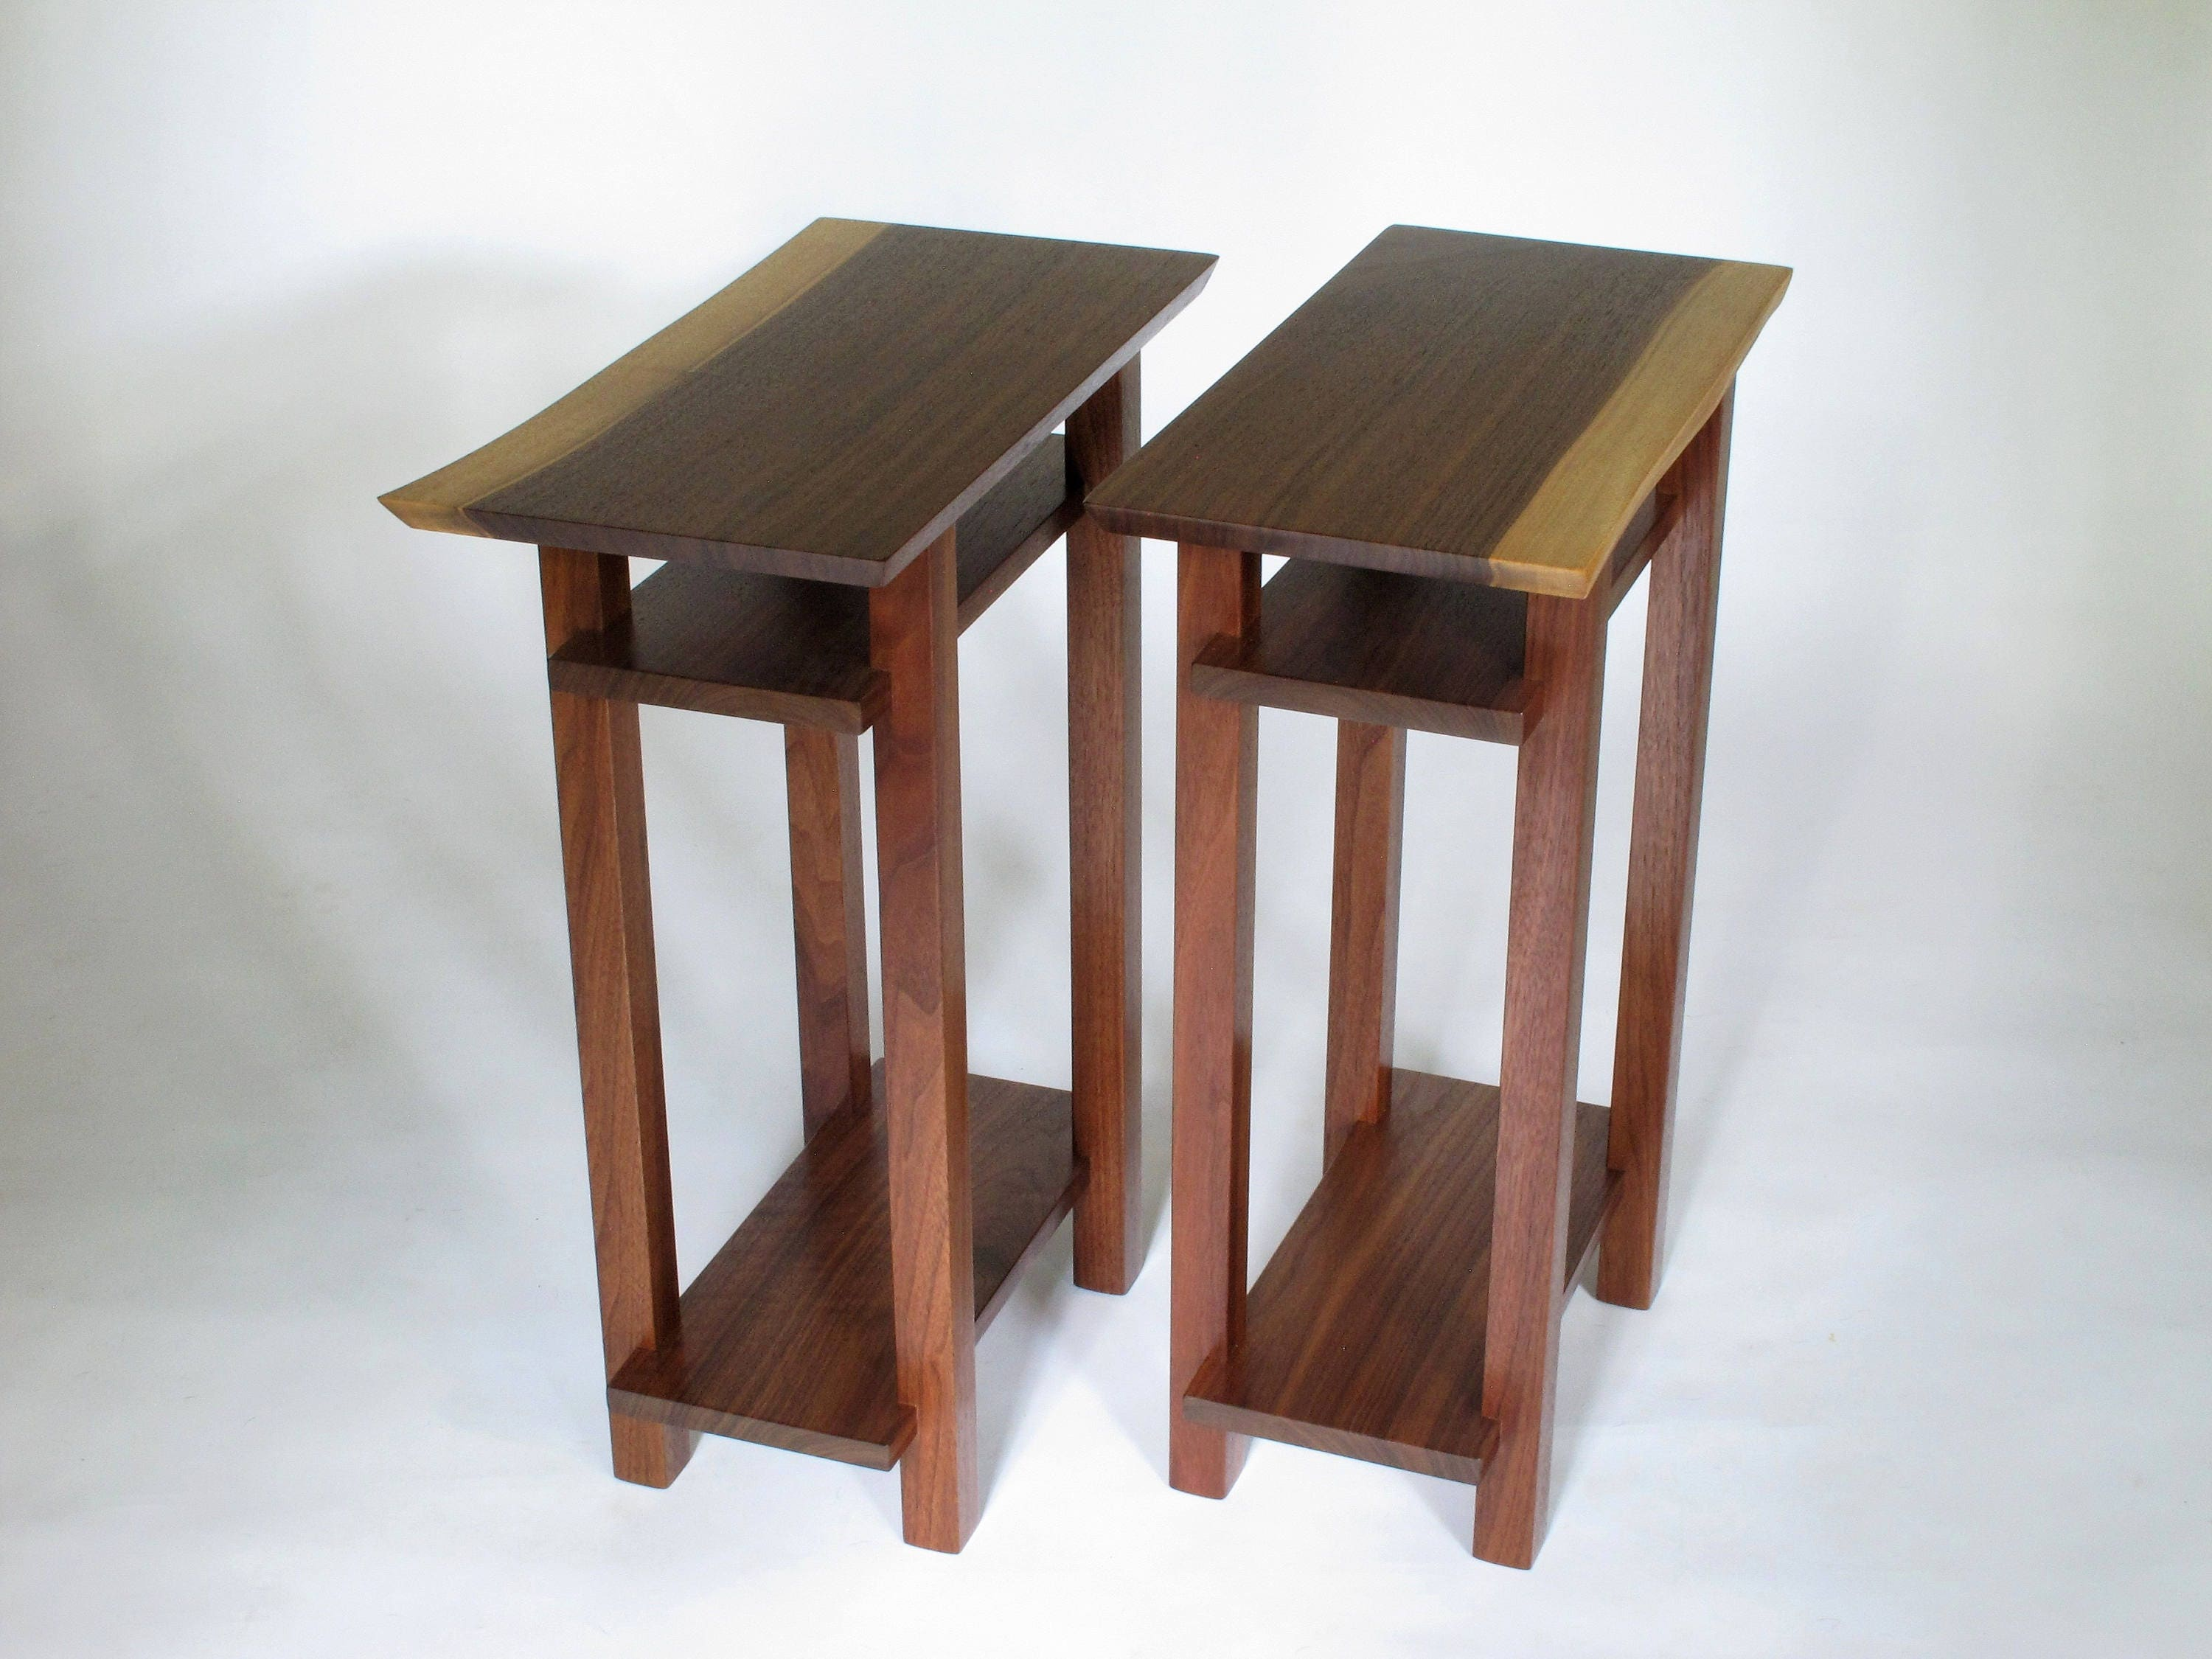 Beau Pair Of Live Edge End Tables   Walnut Table Set   Narrow Furniture Design,  Minimalist Modern Home Decor   Solid Wood Tables For Small Spaces